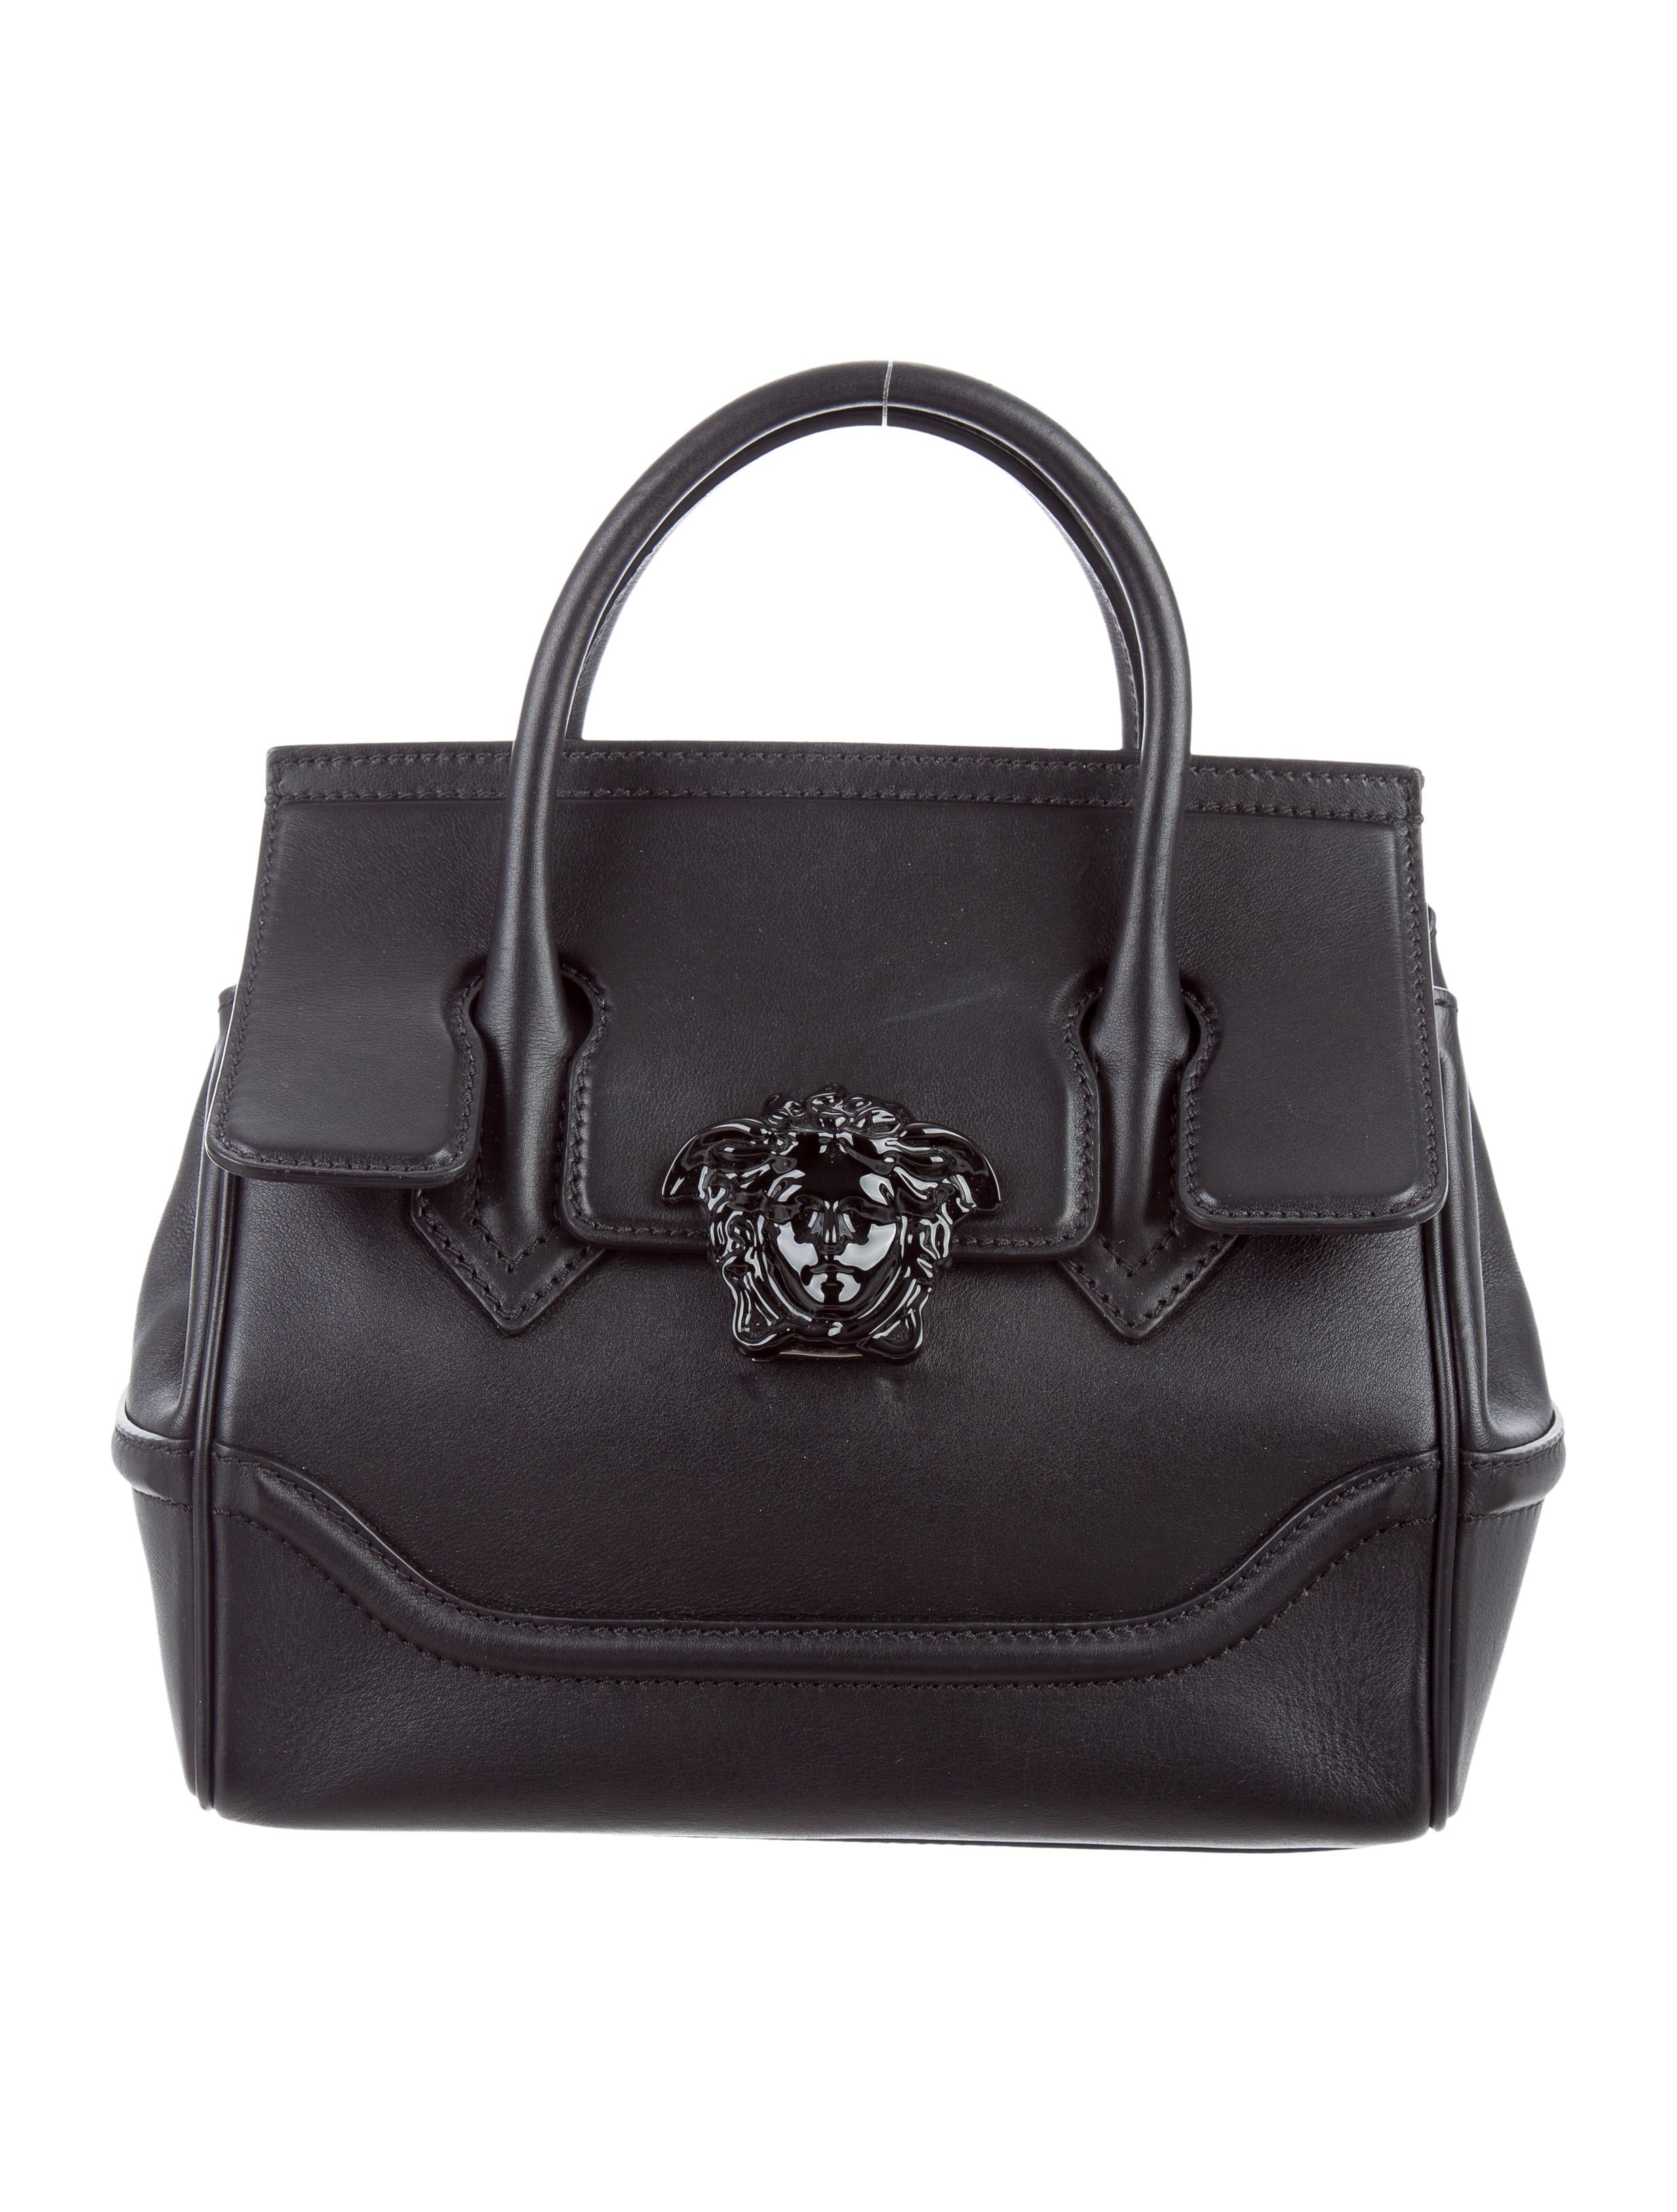 Versace Palazzo Empire Bag Handbags VES30480 The  : VES304801enlarged from www.therealreal.com size 2473 x 3261 jpeg 653kB